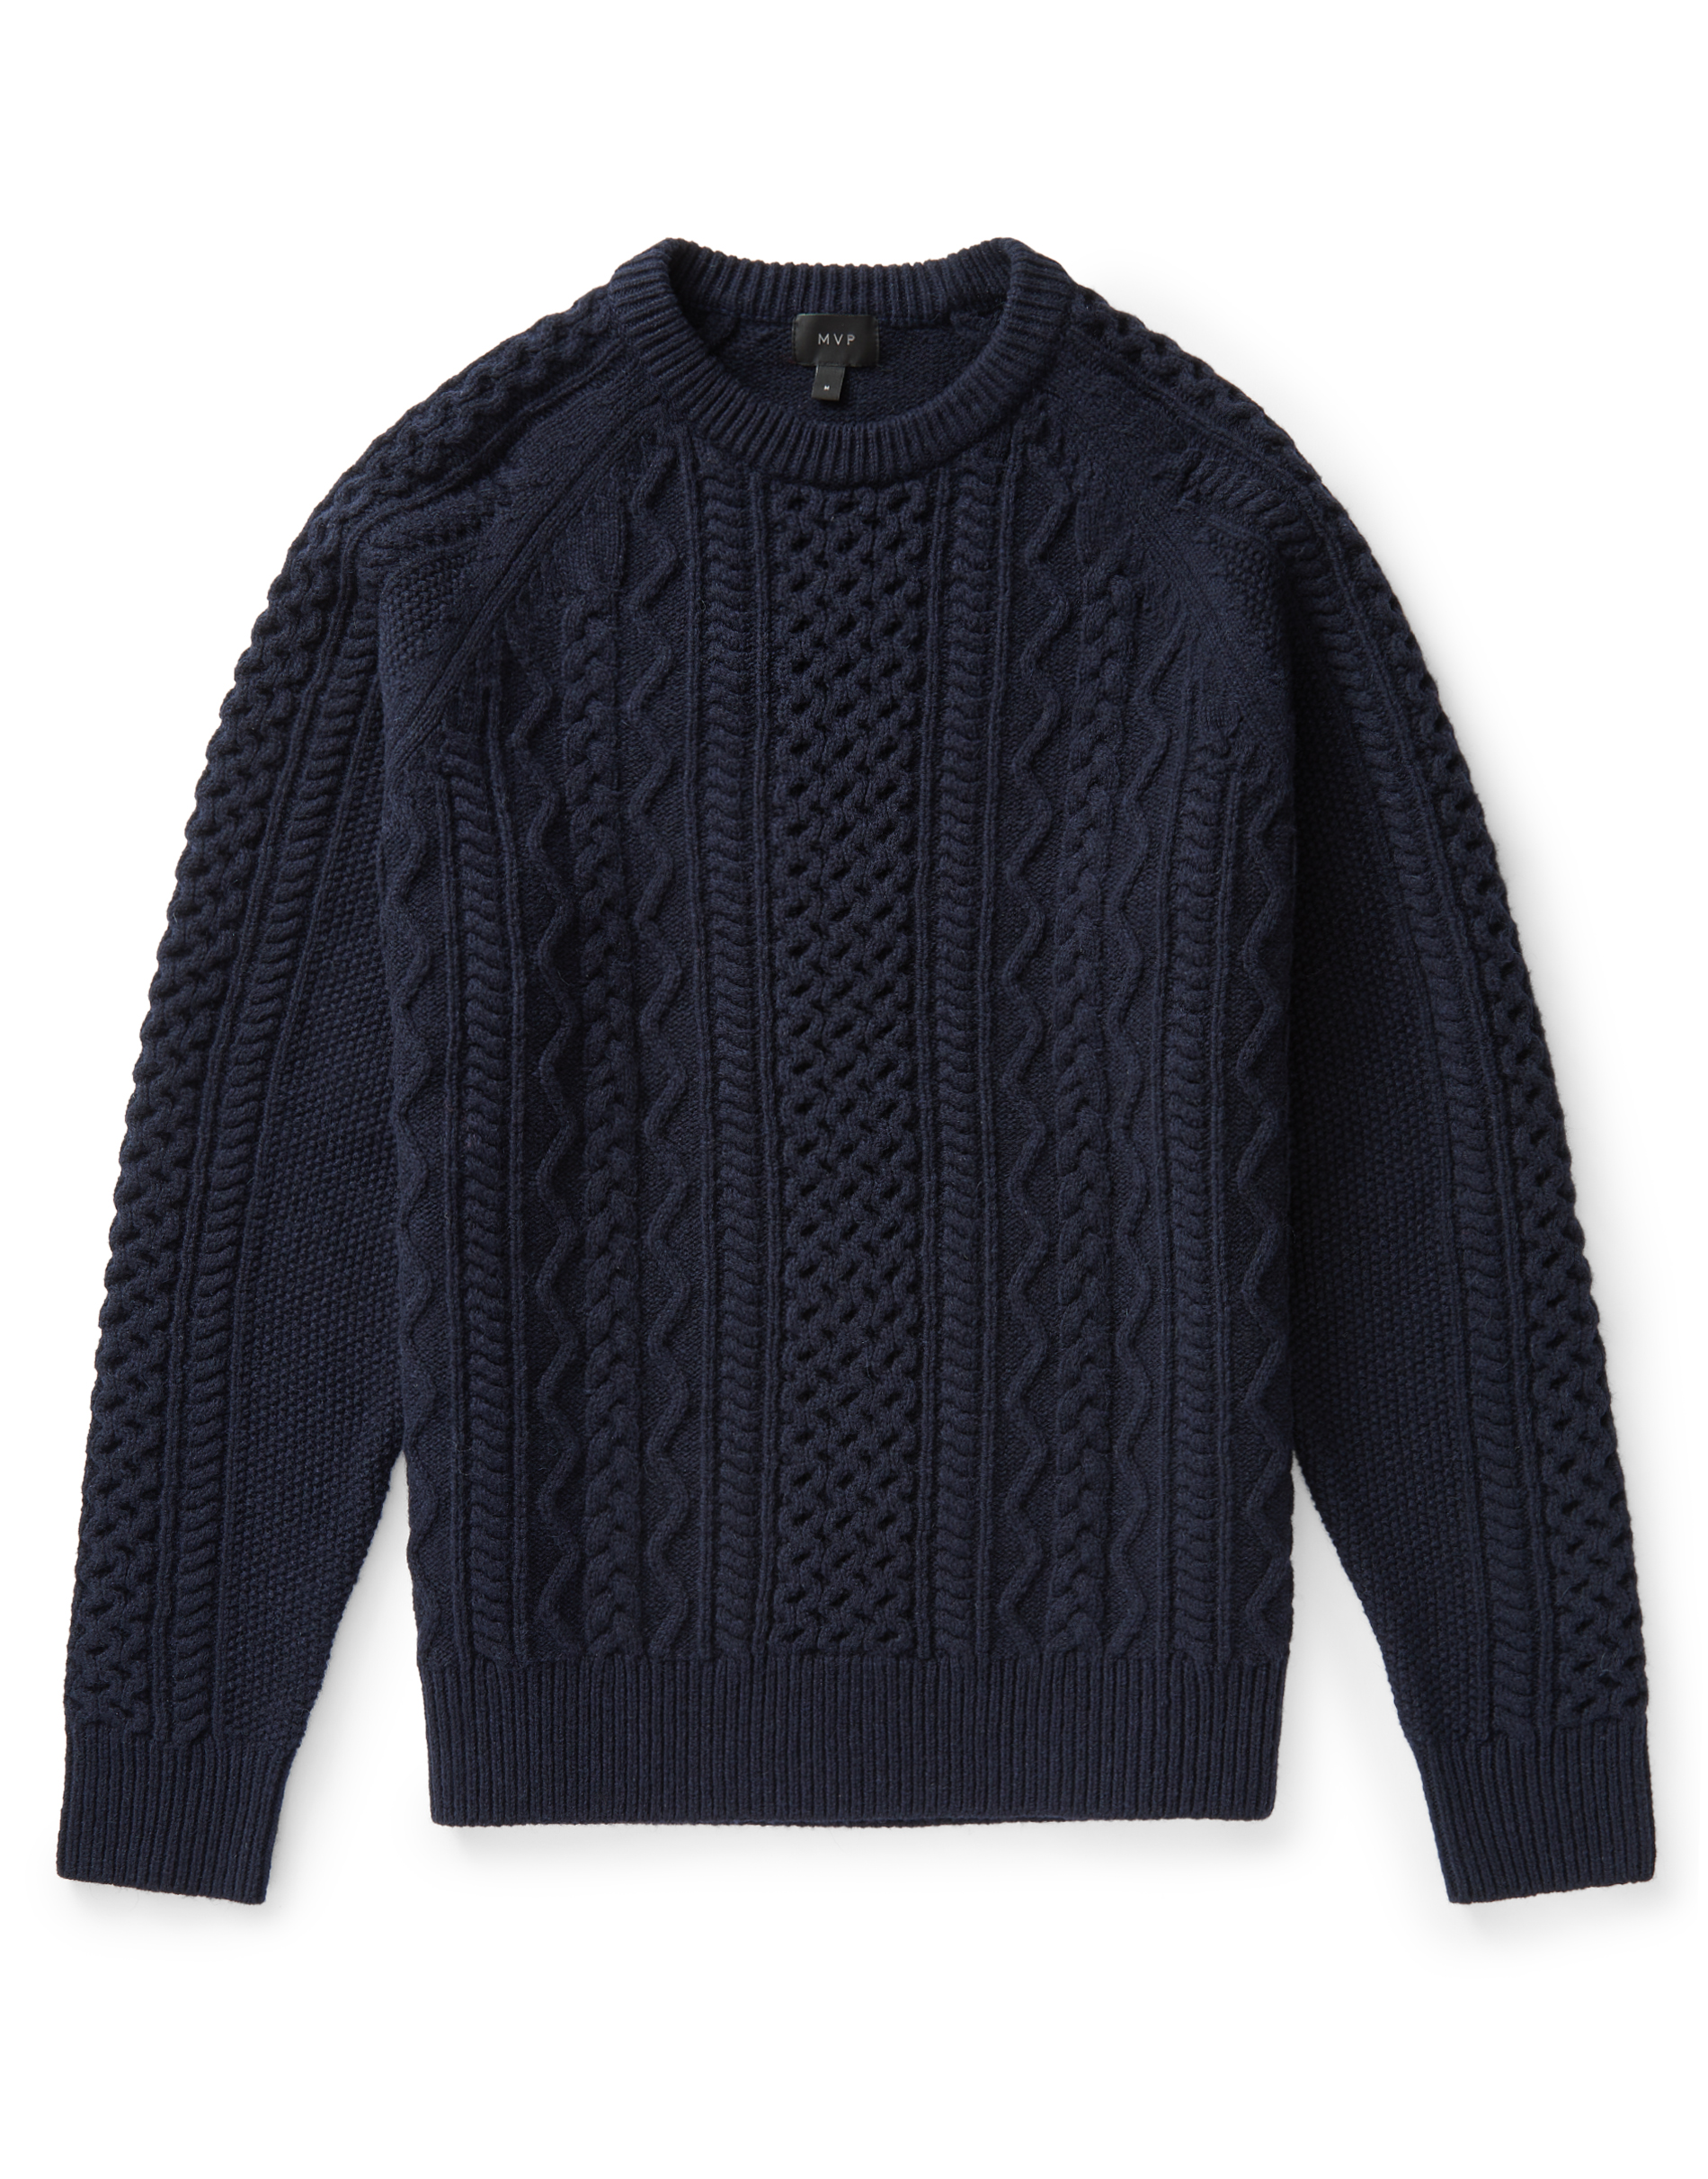 MVP Navy Finnis Lambswool Cable Knit Sweater